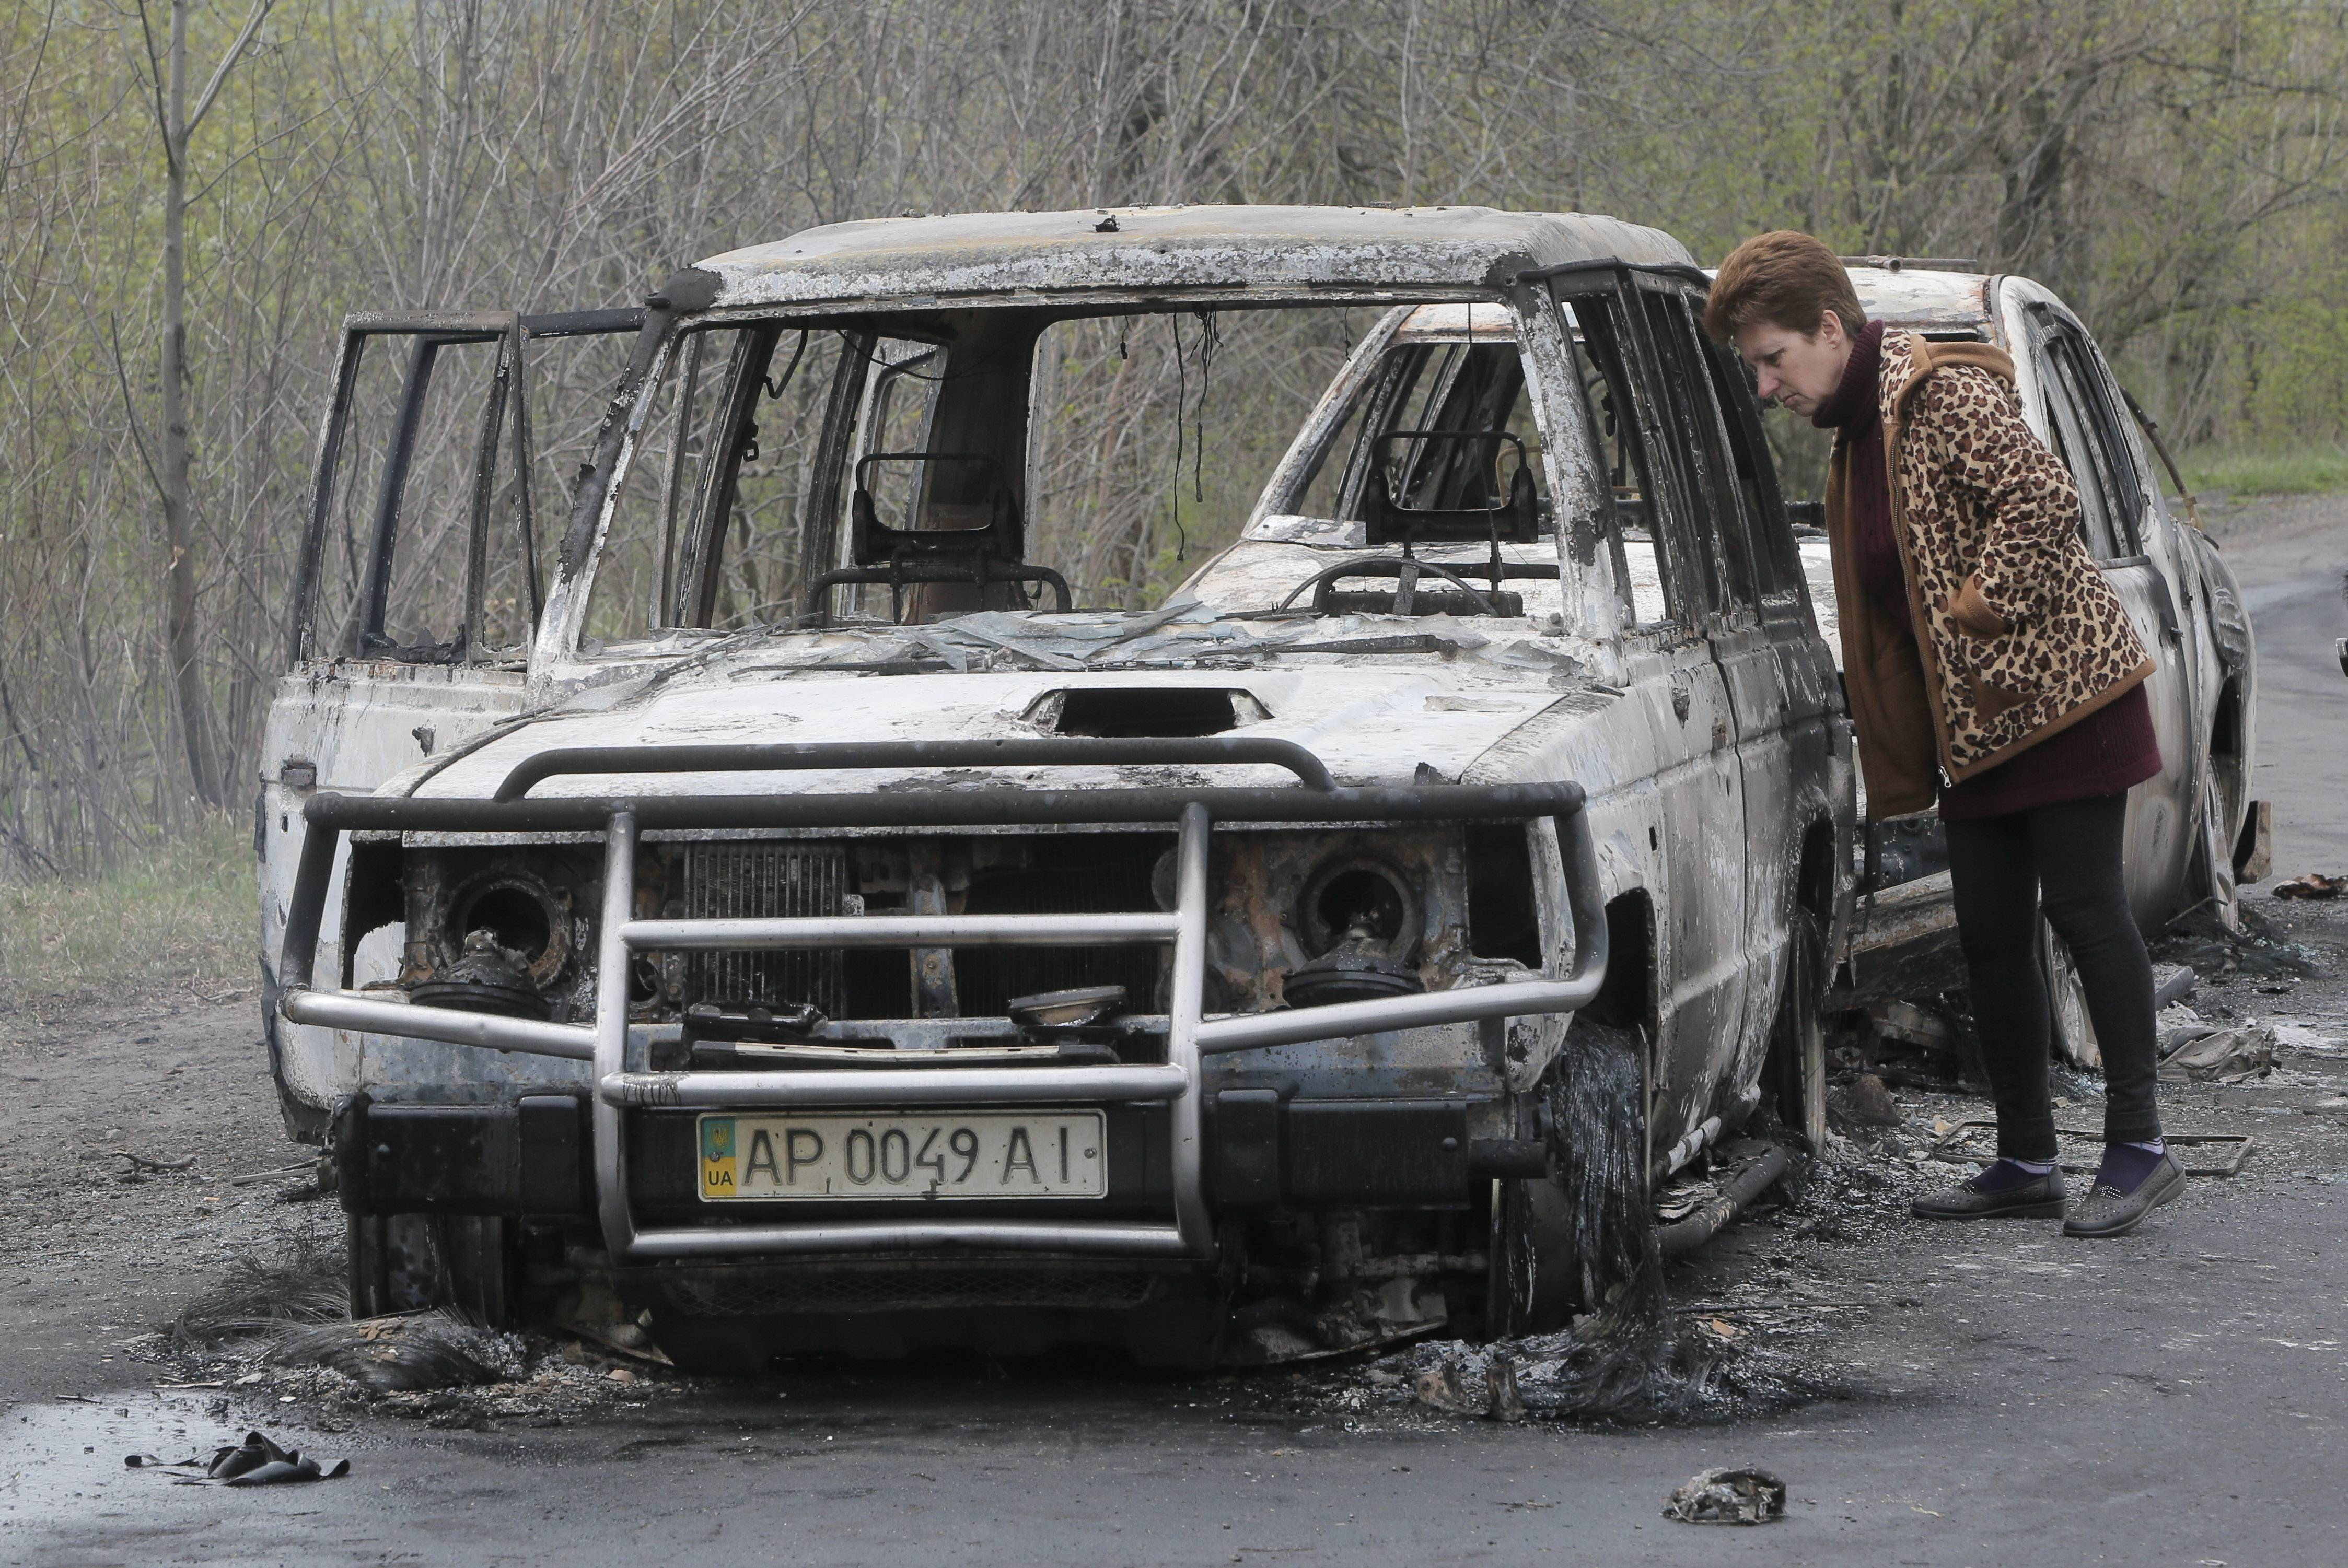 A local resident inspects burnt-out cars after night fight at the checkpoint which was under control of pro-Russian activists in the village of Bulbasika near Slovyansk on Sunday.